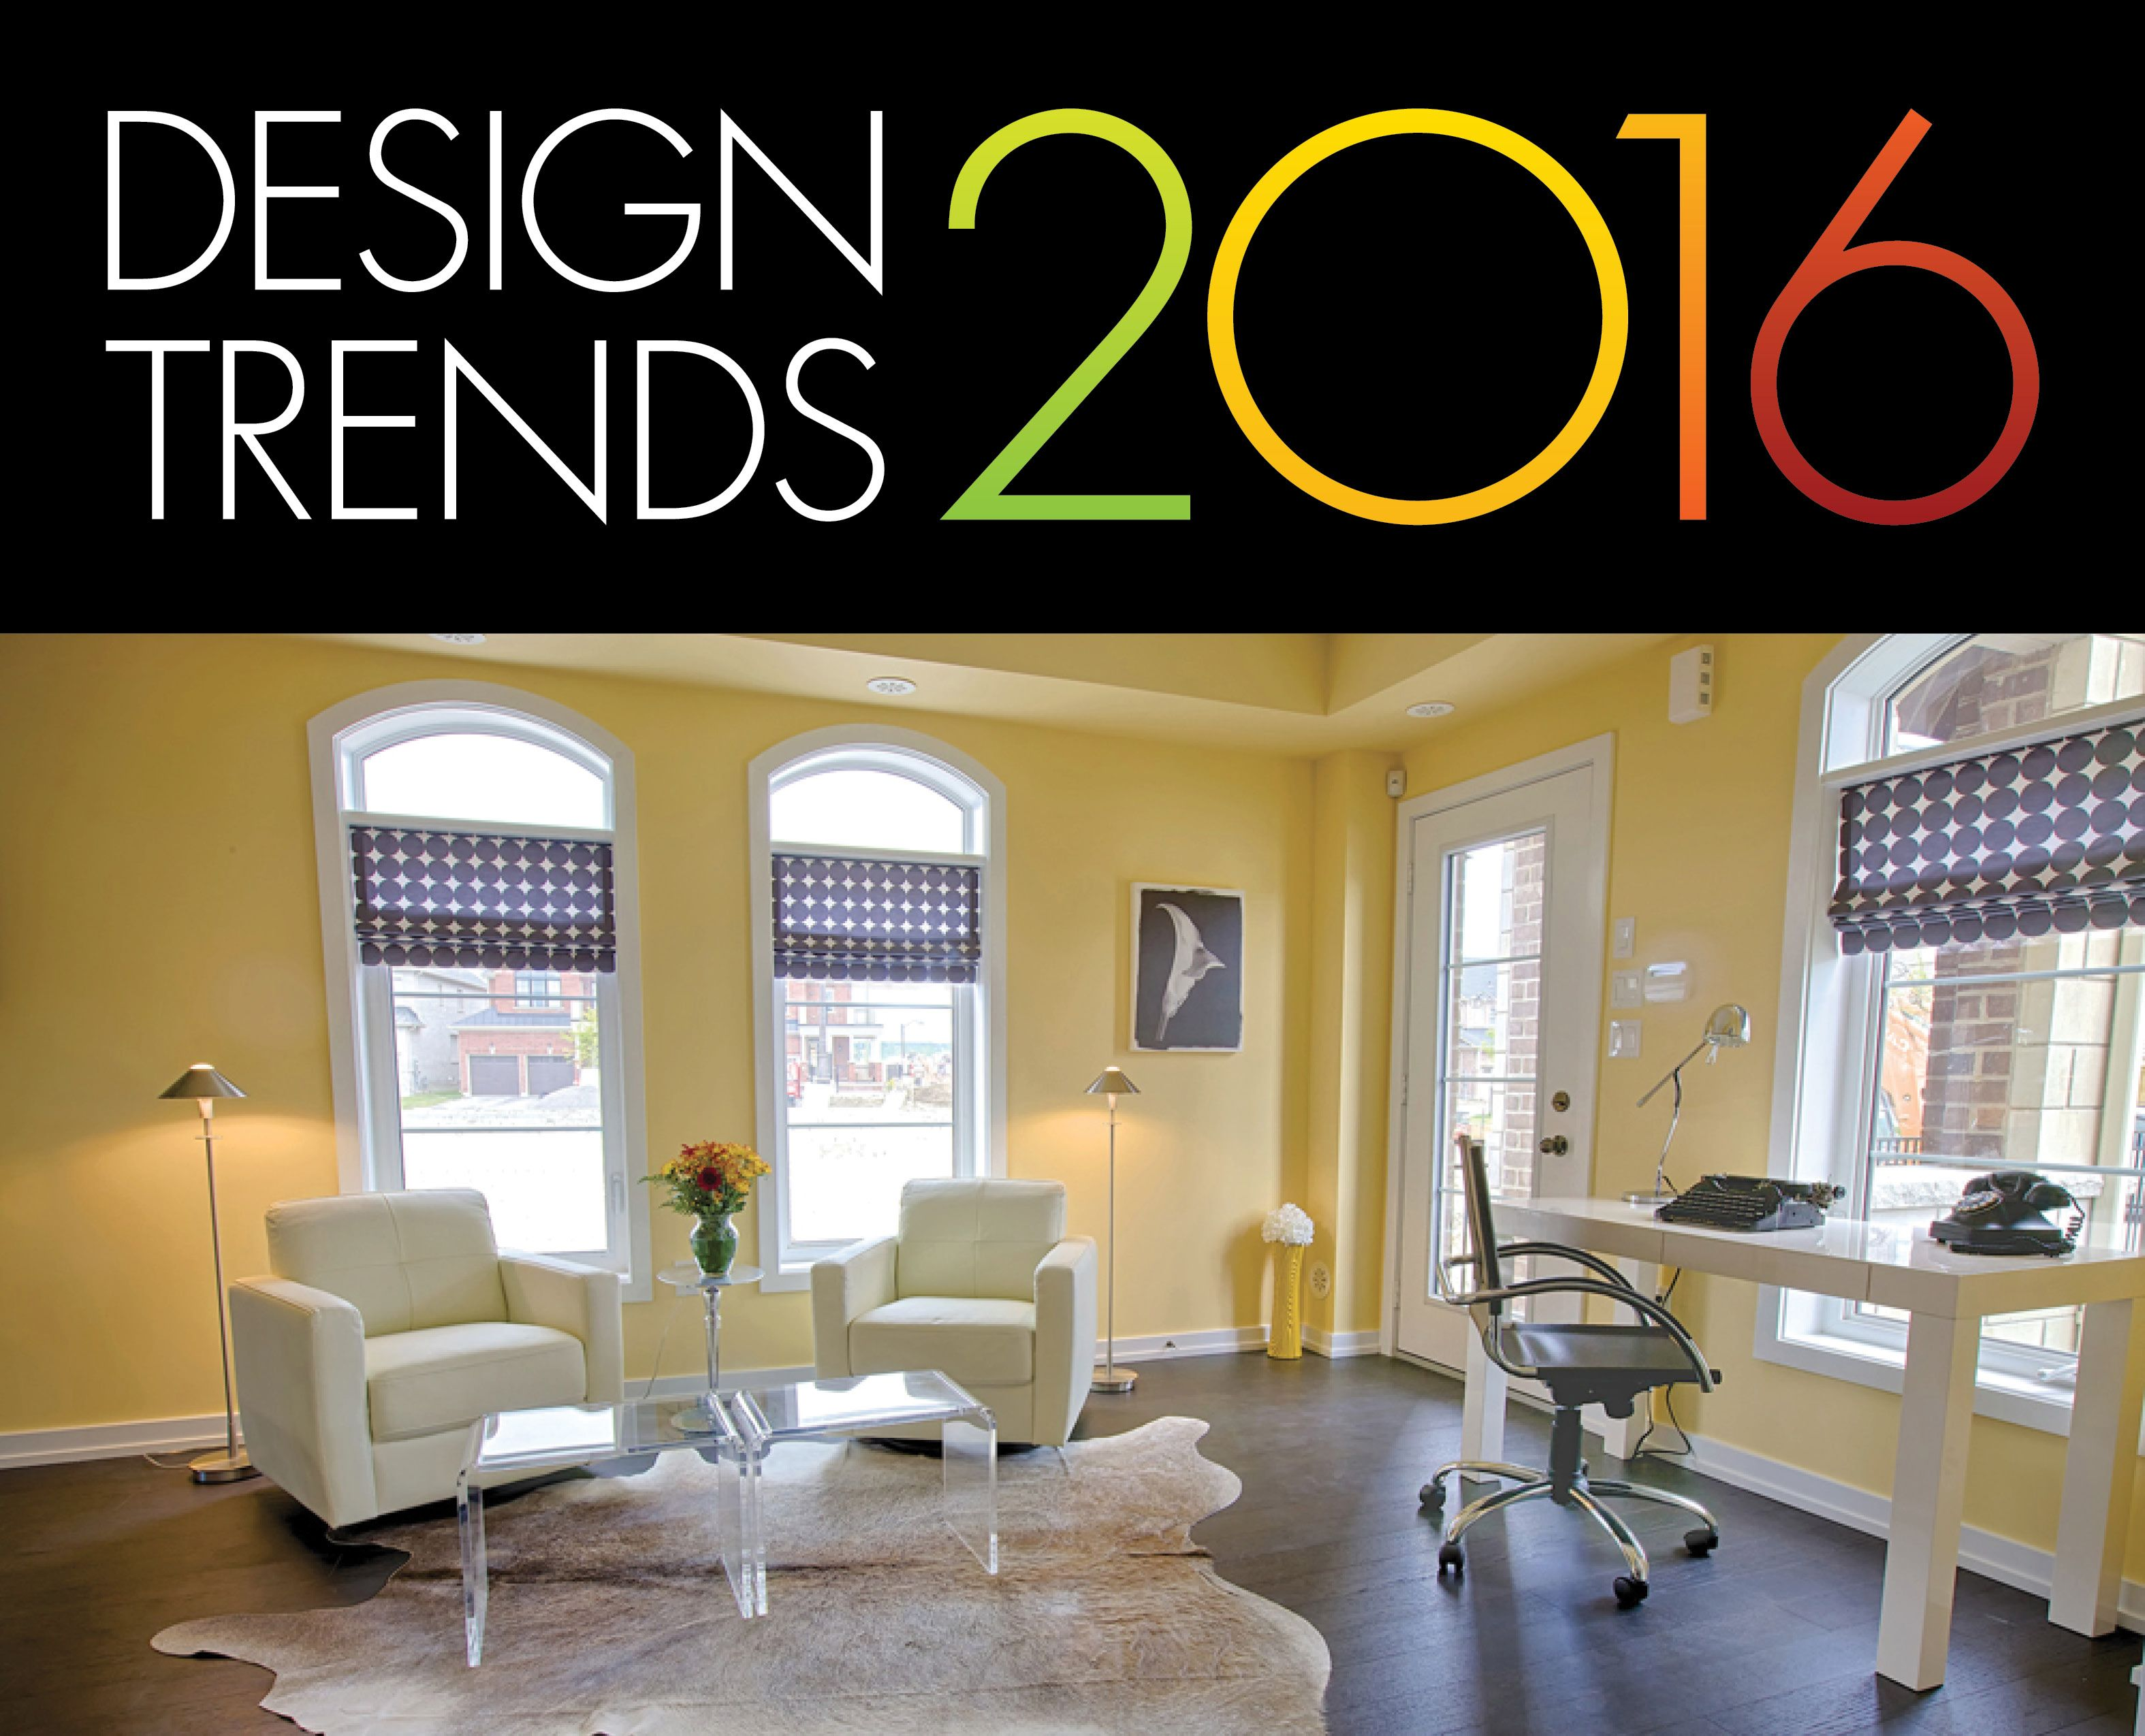 Home Decor Trends Are Always Evolving And With The Anticipation Of New Year Its Time